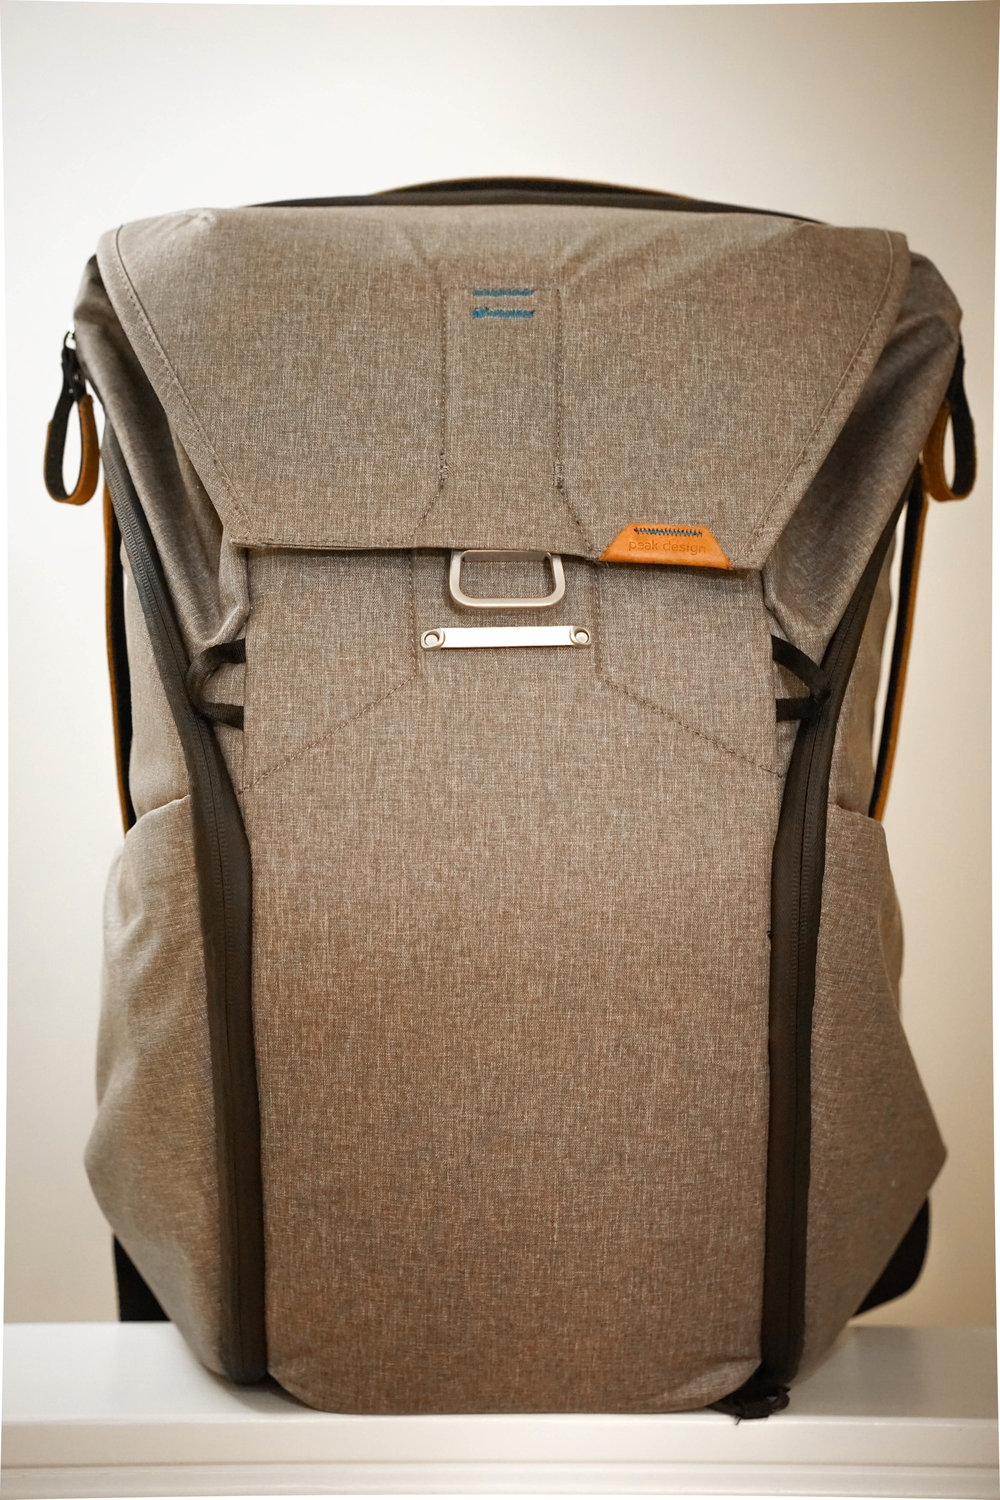 The Every Day 30L Backpack by Peak Design